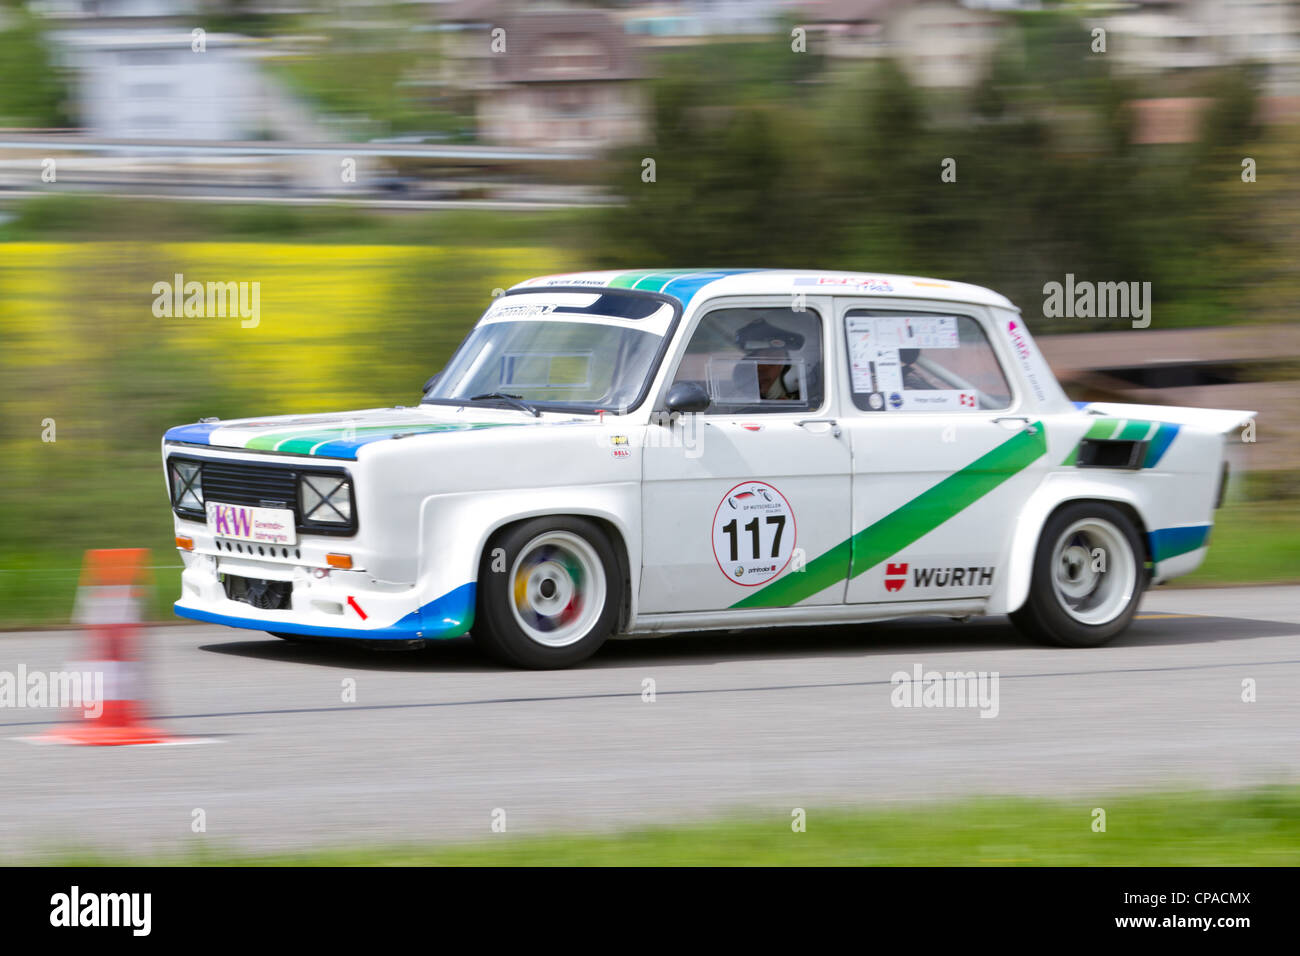 Vintage race touring car Simca Rallye 3 from 1976 at Grand Prix in Mutschellen, SUI on April 29, 2012. - Stock Image